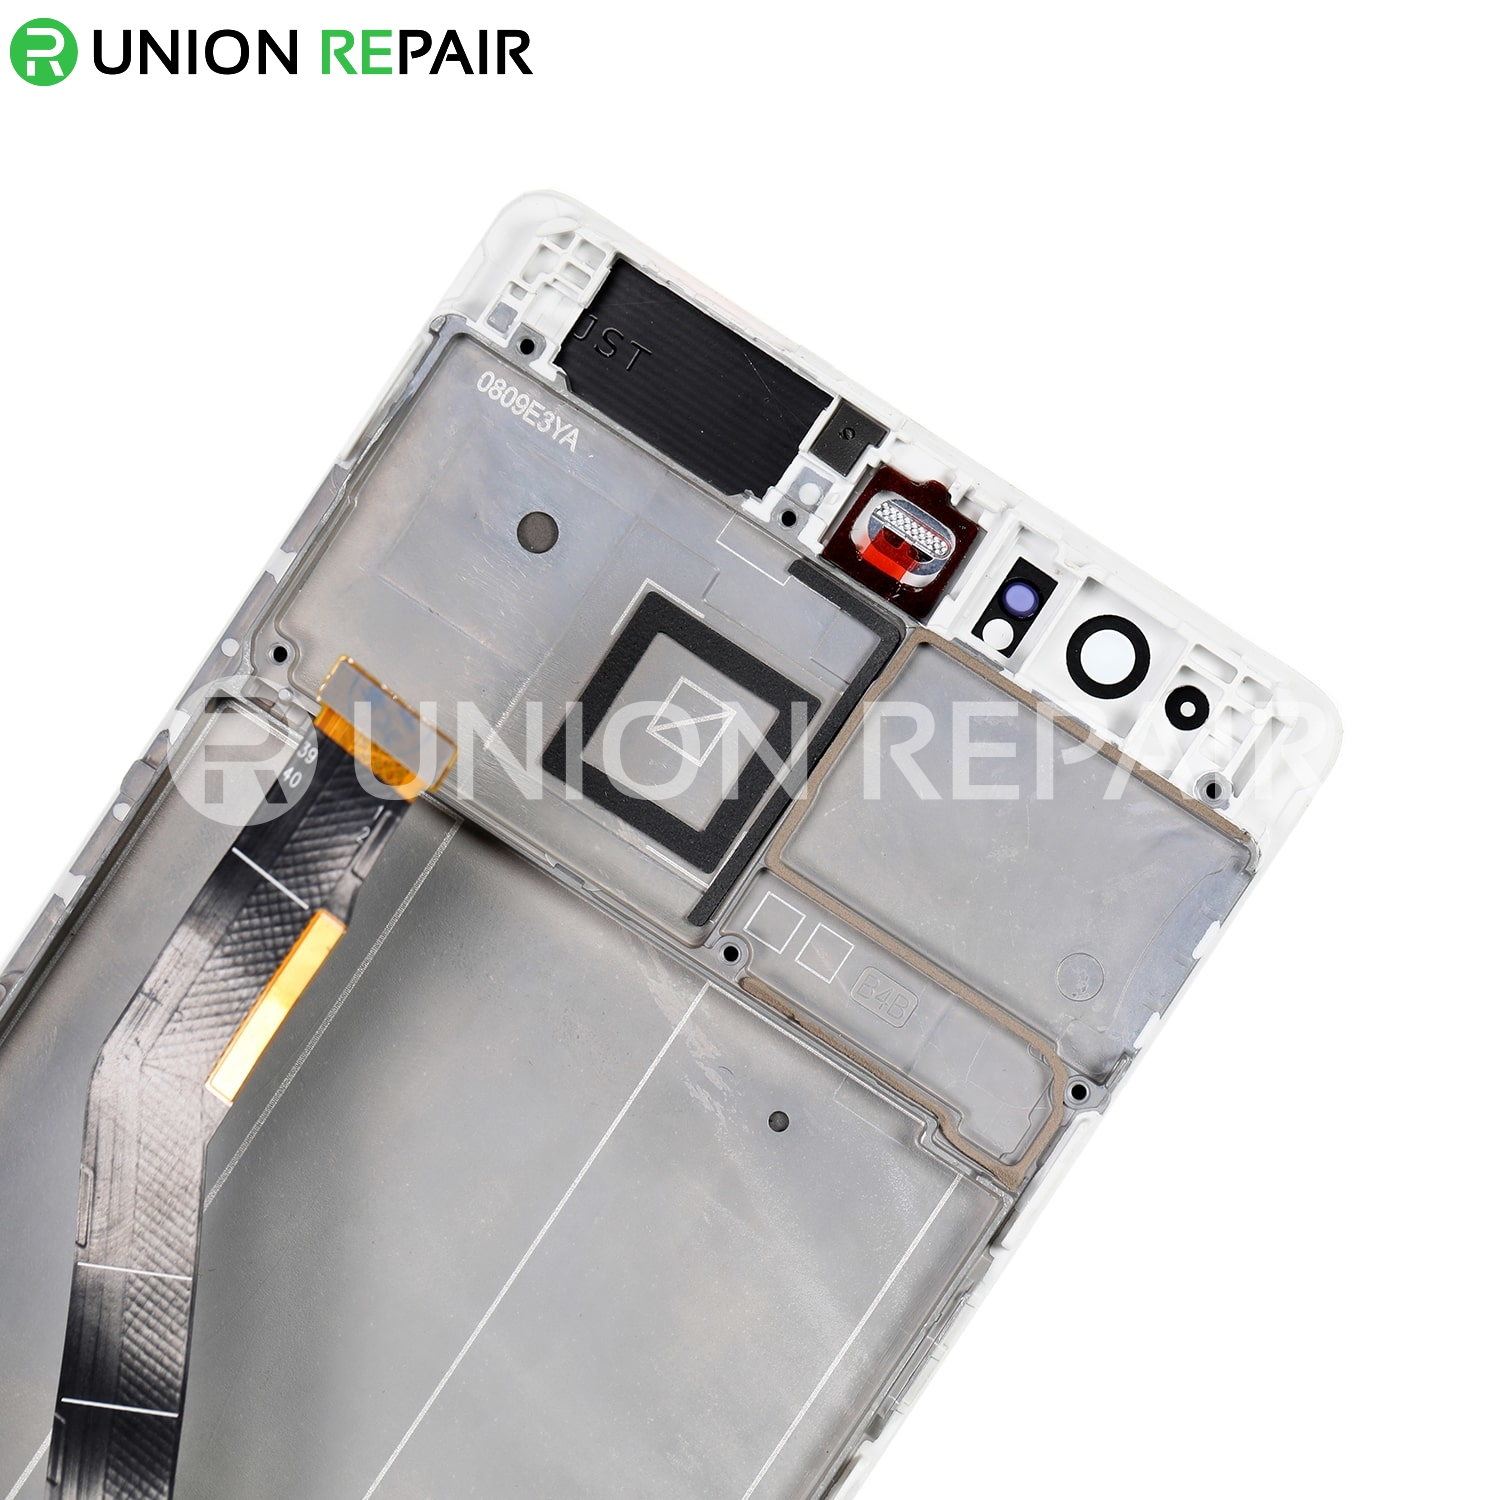 Replacement for Huawei P9 Plus LCD Digitizer Assembly with Frame - White